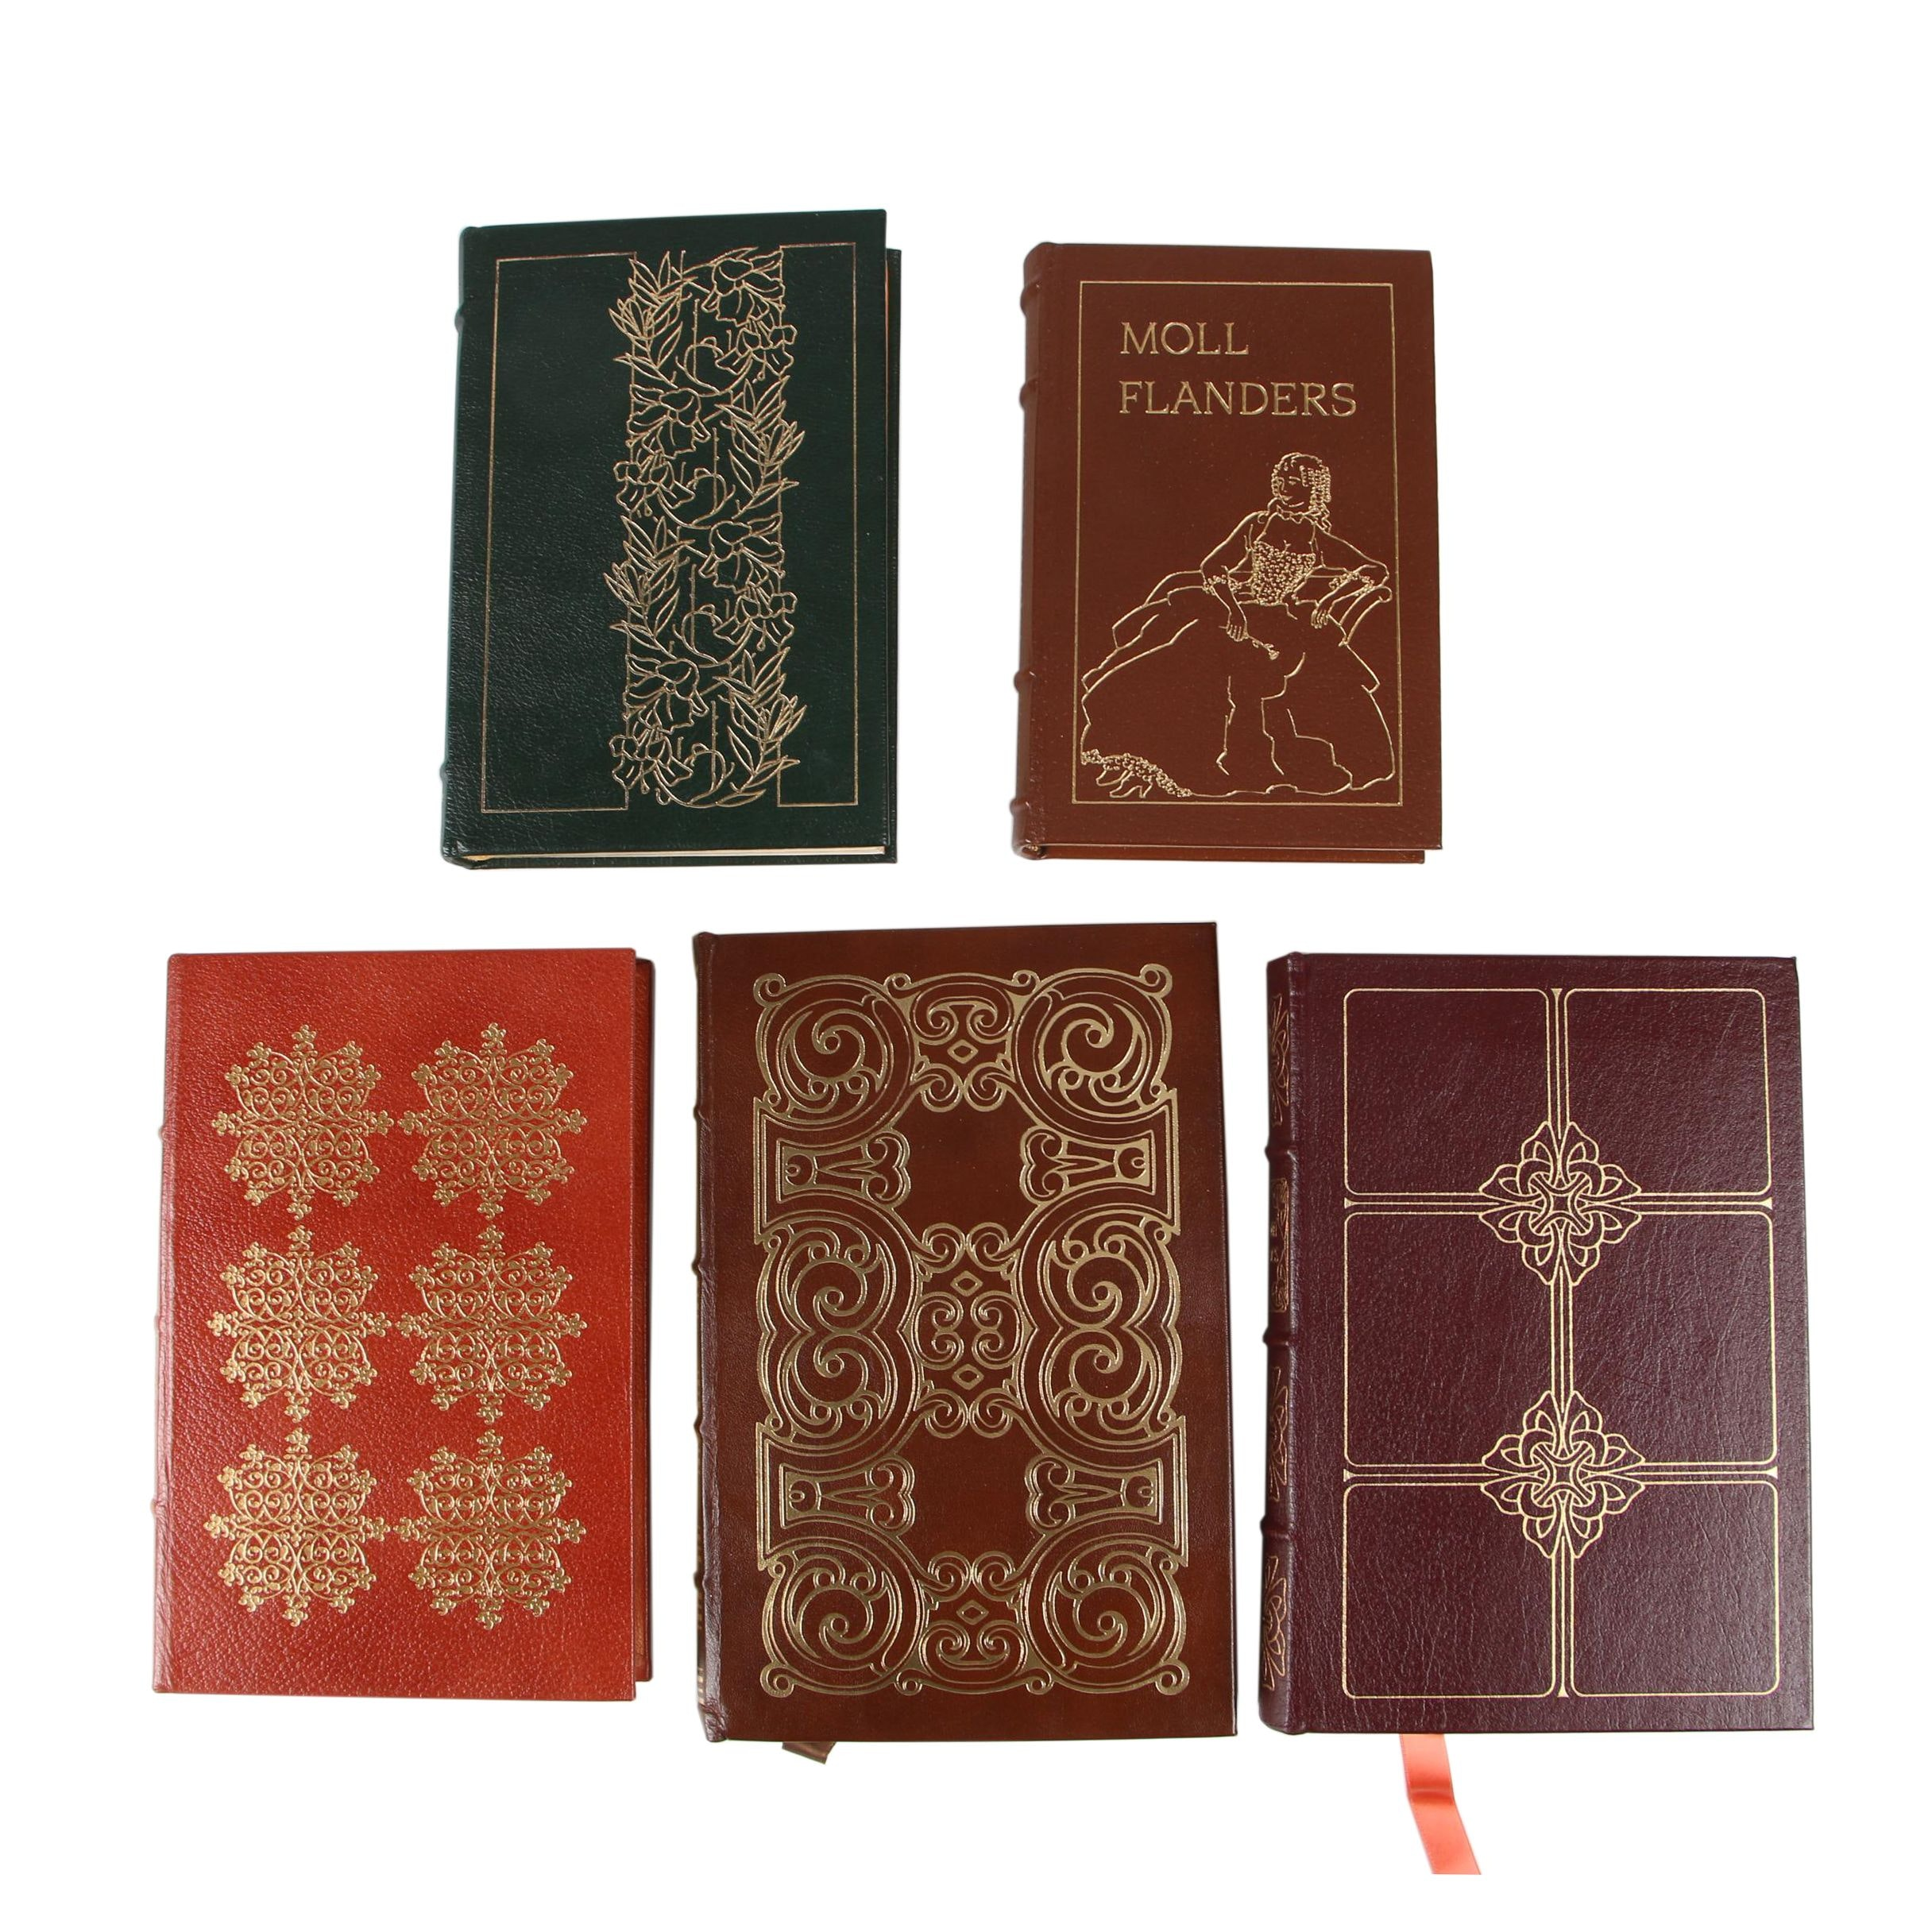 Easton Press Collector's Editions by British Authors